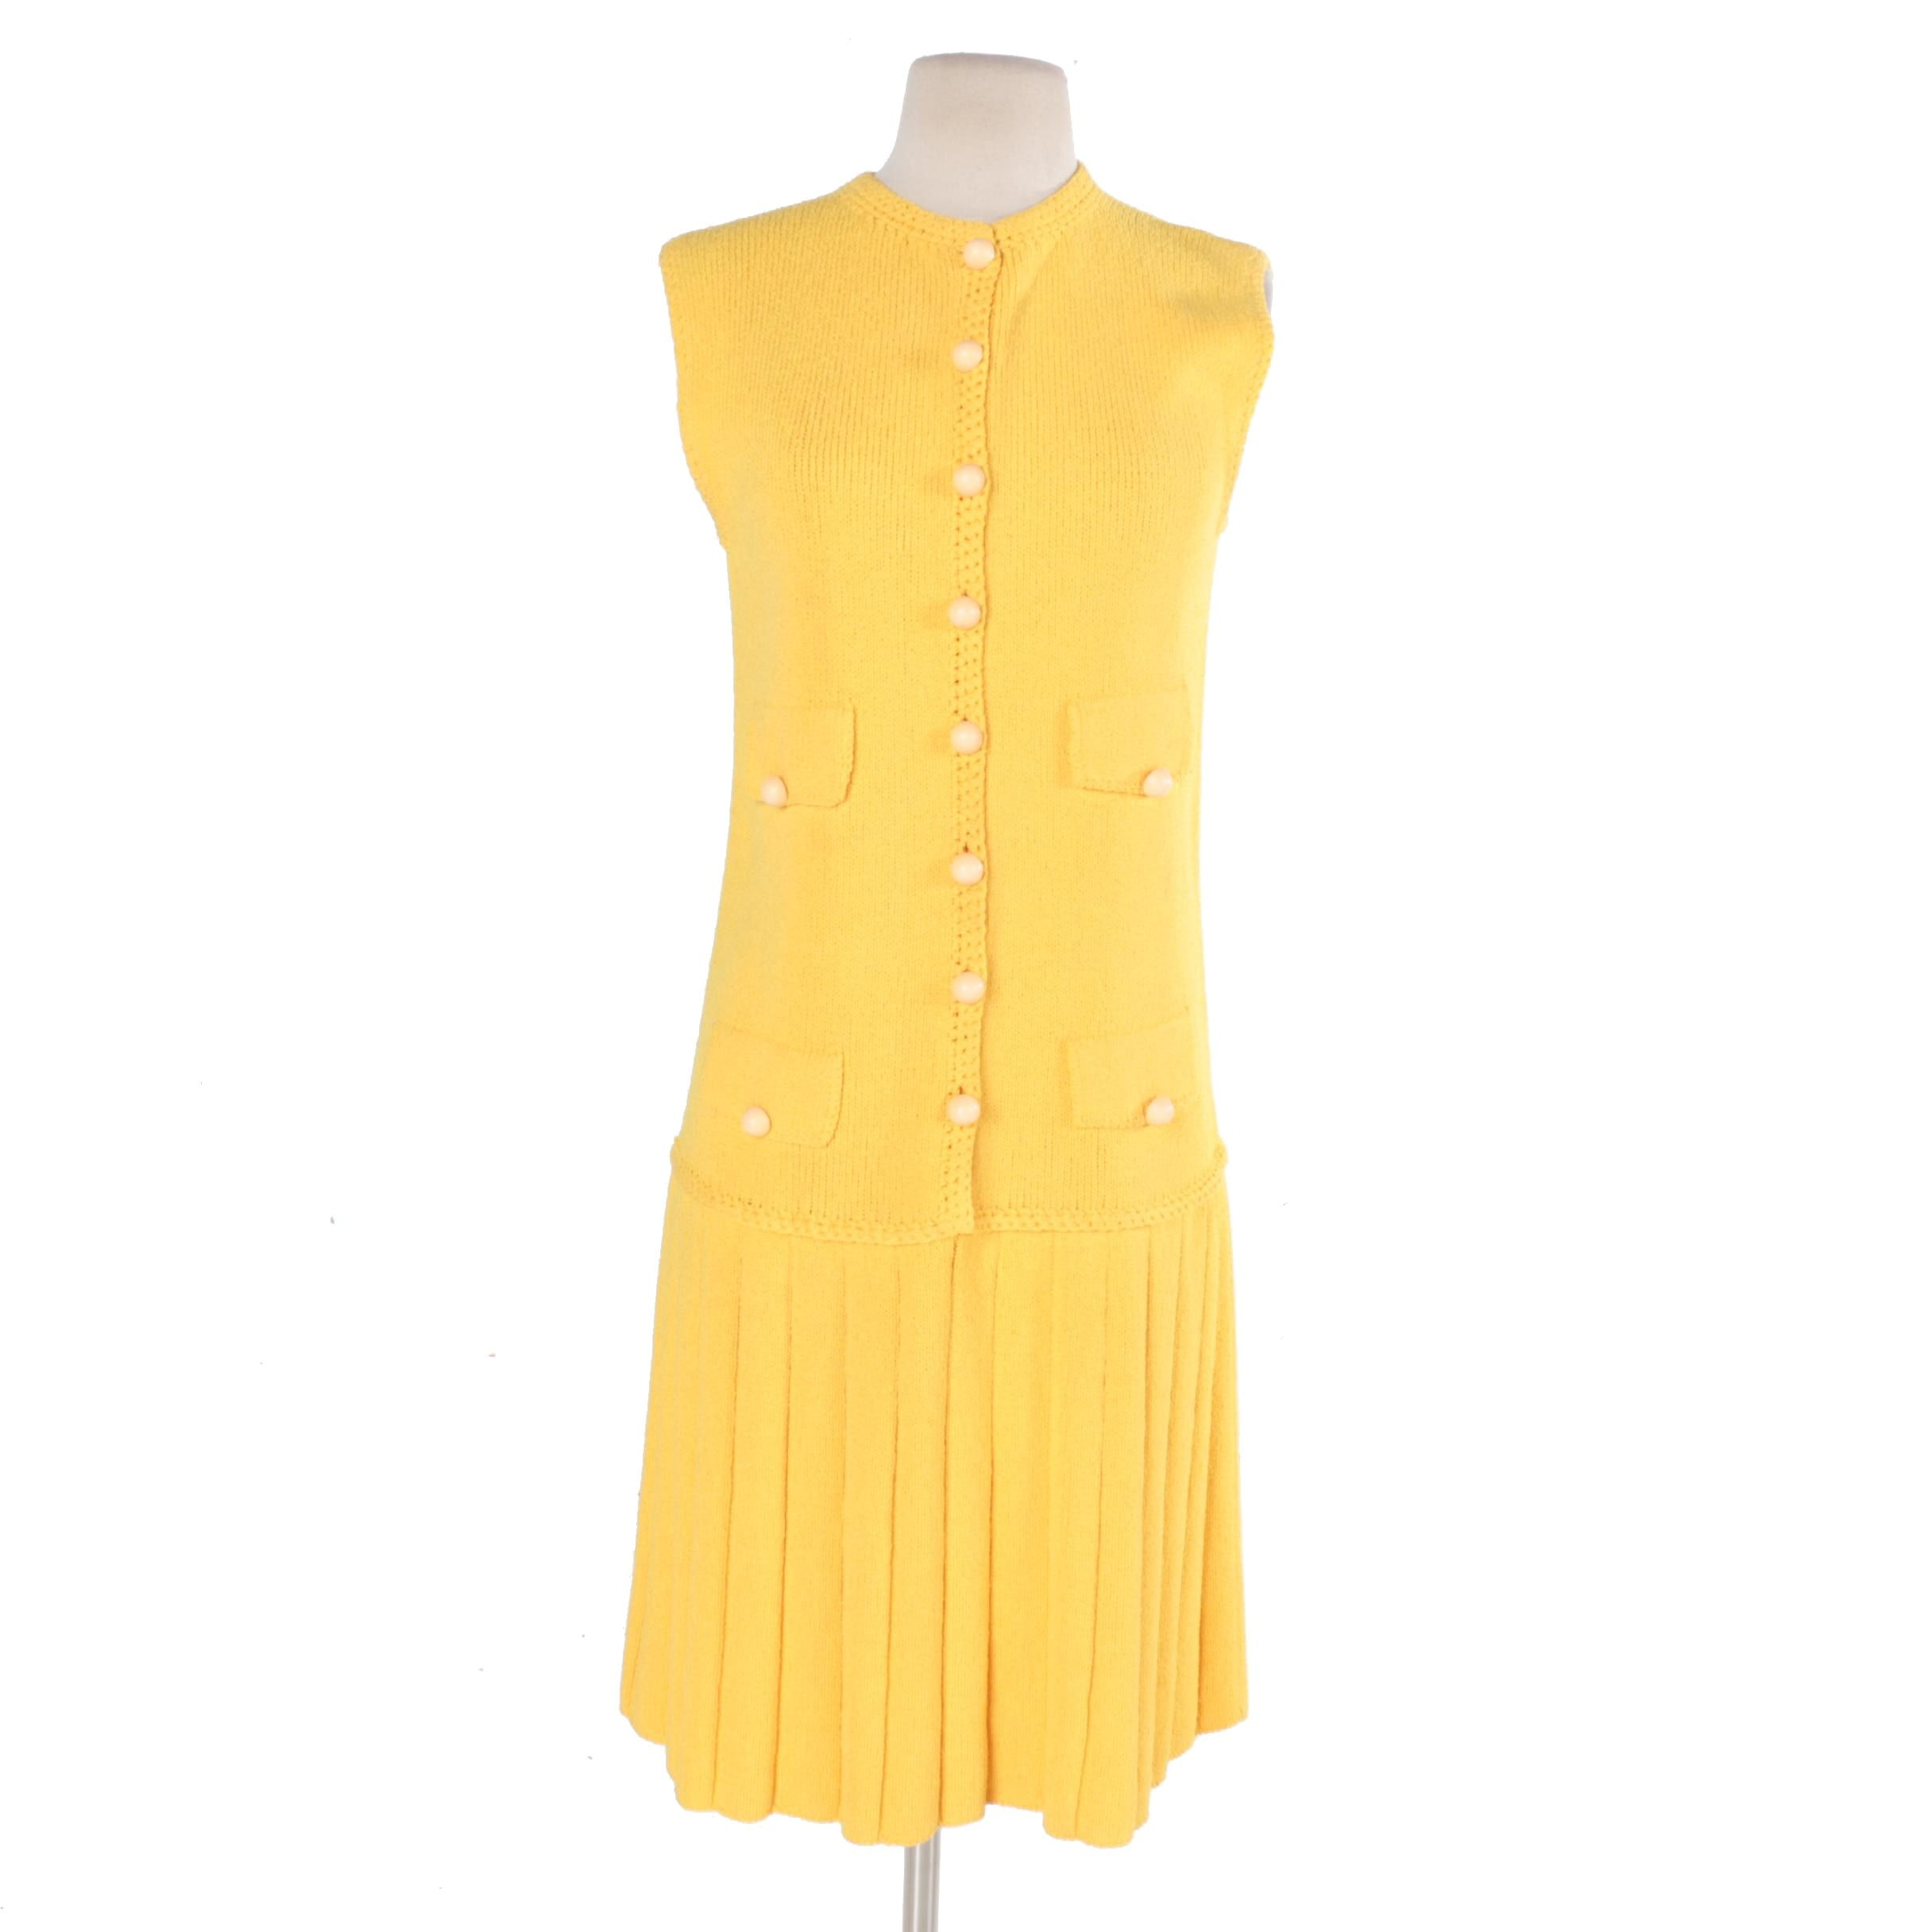 Vintage St. John Knits Sleeveless Yellow Knit Dress